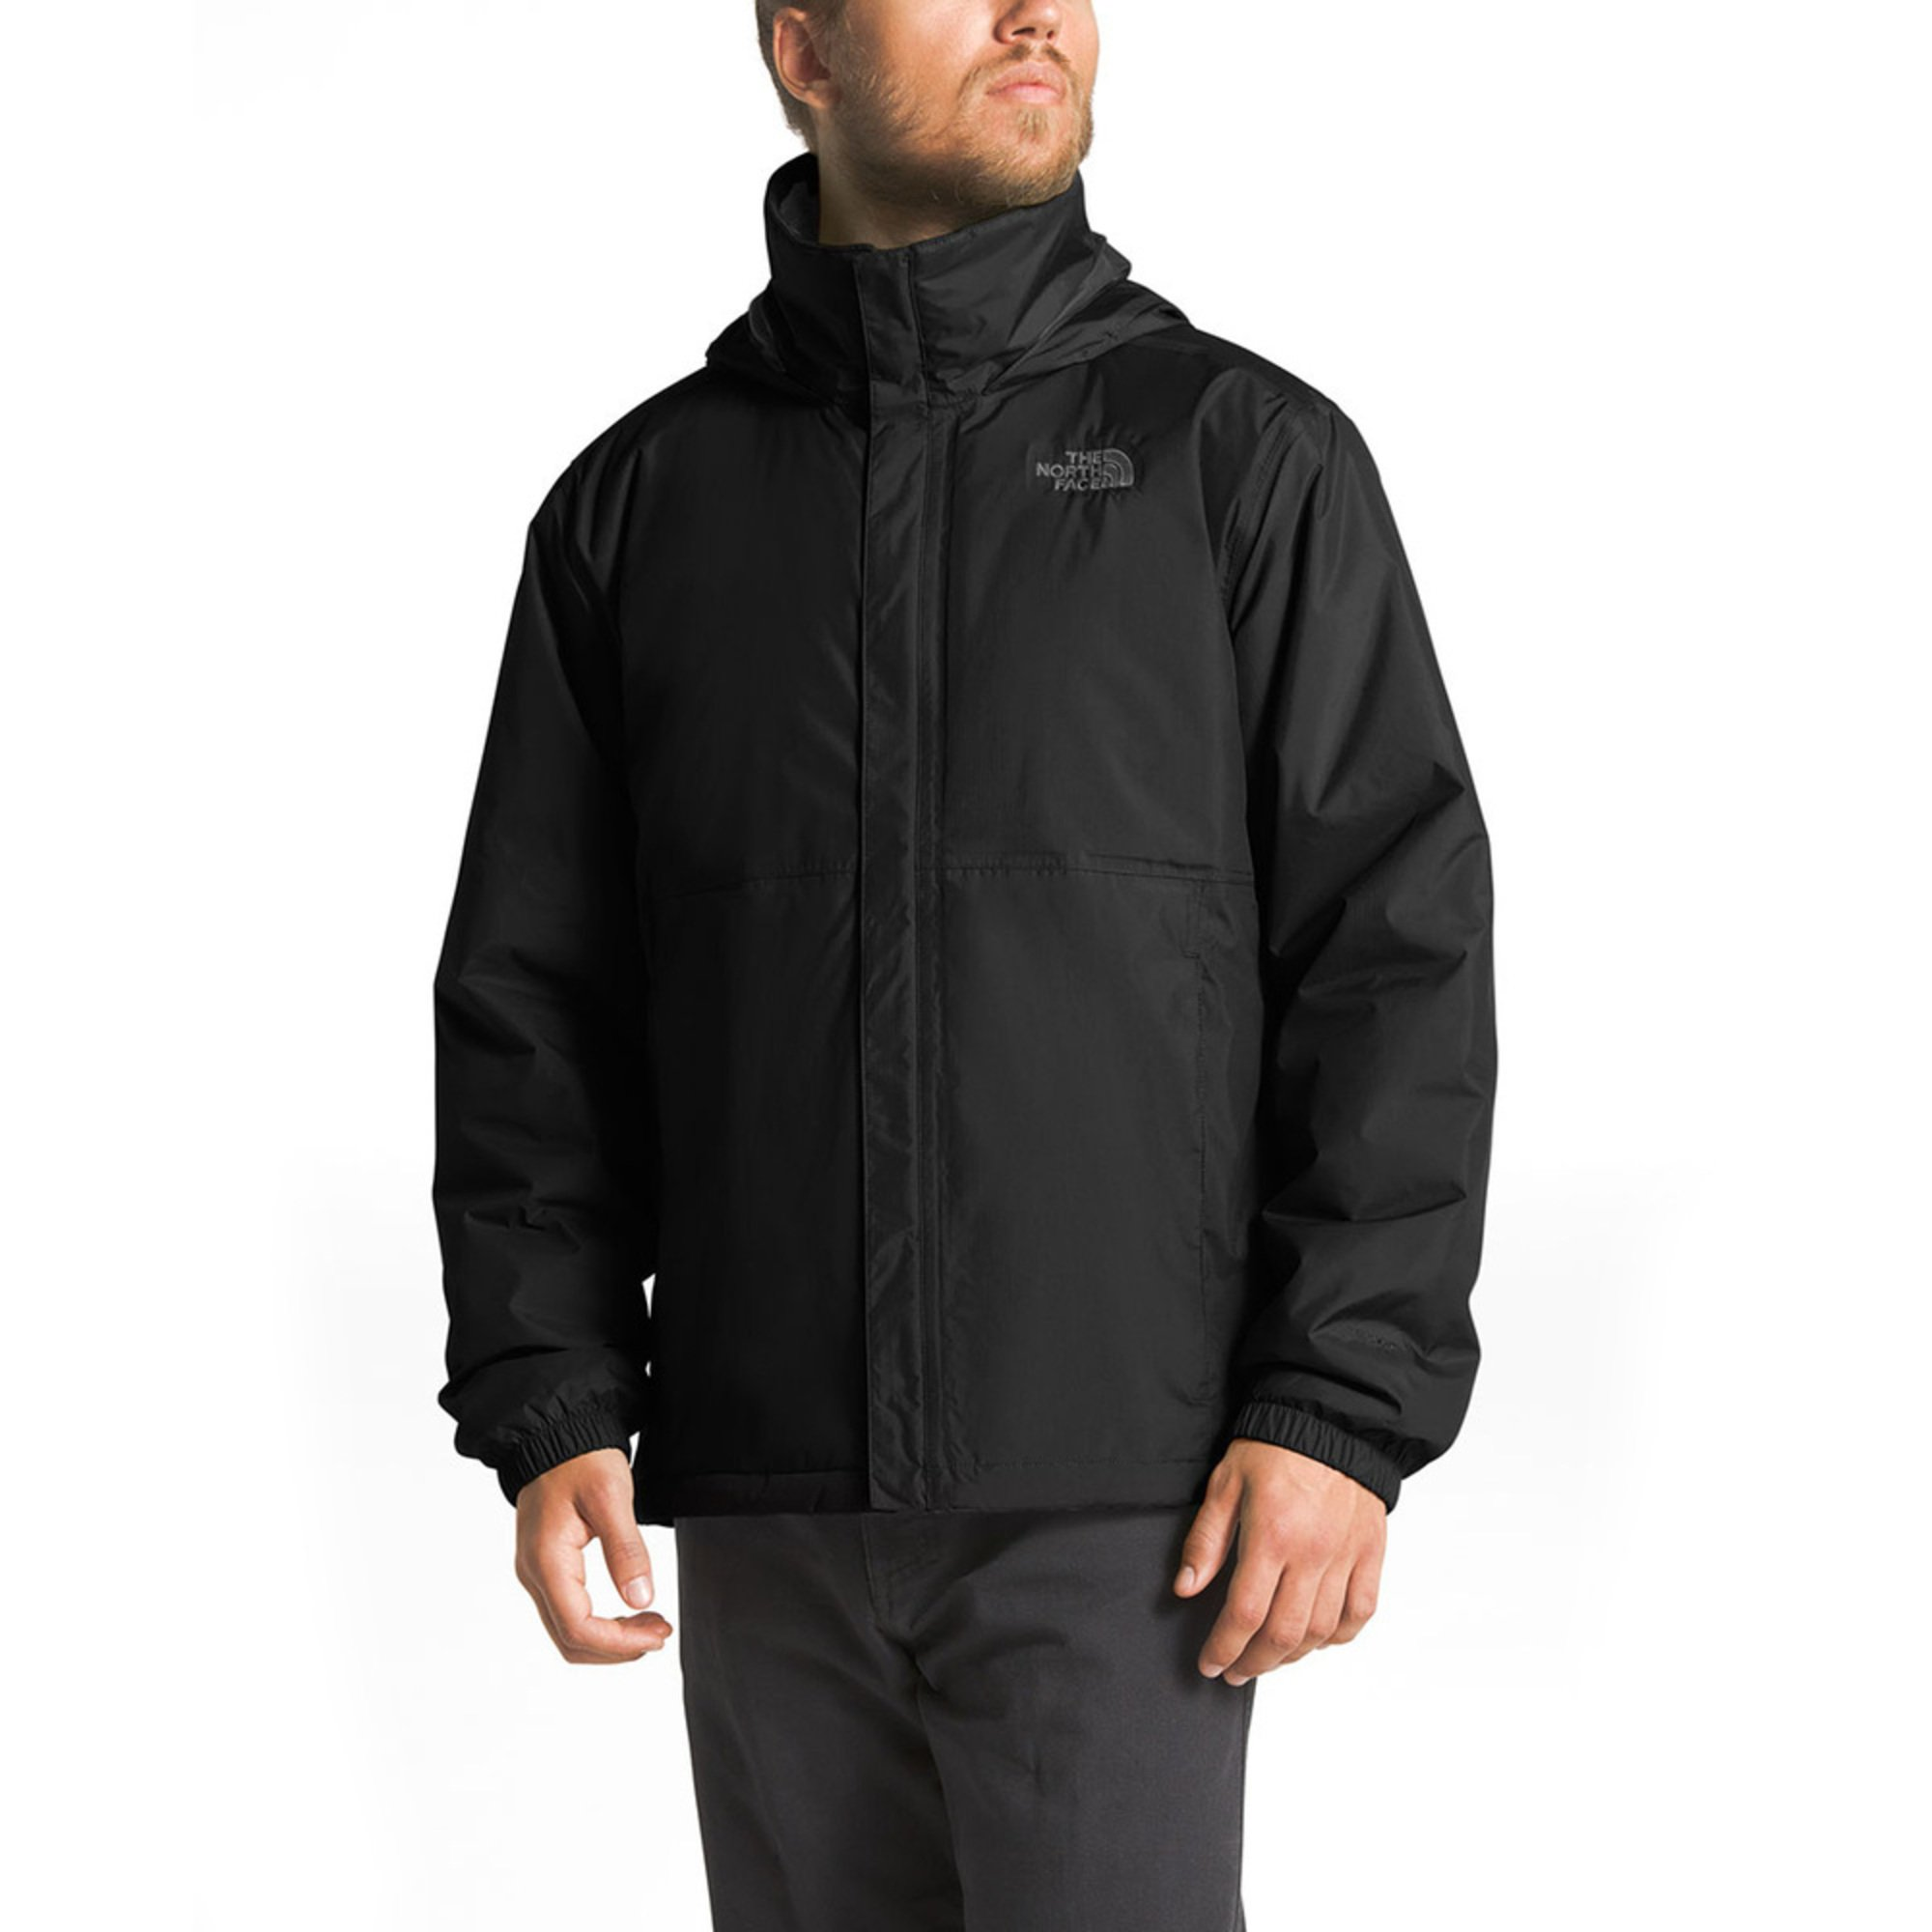 fashion styles first look preview of The North Face Men's Resolve Insulated Jacket | Outdoor ...